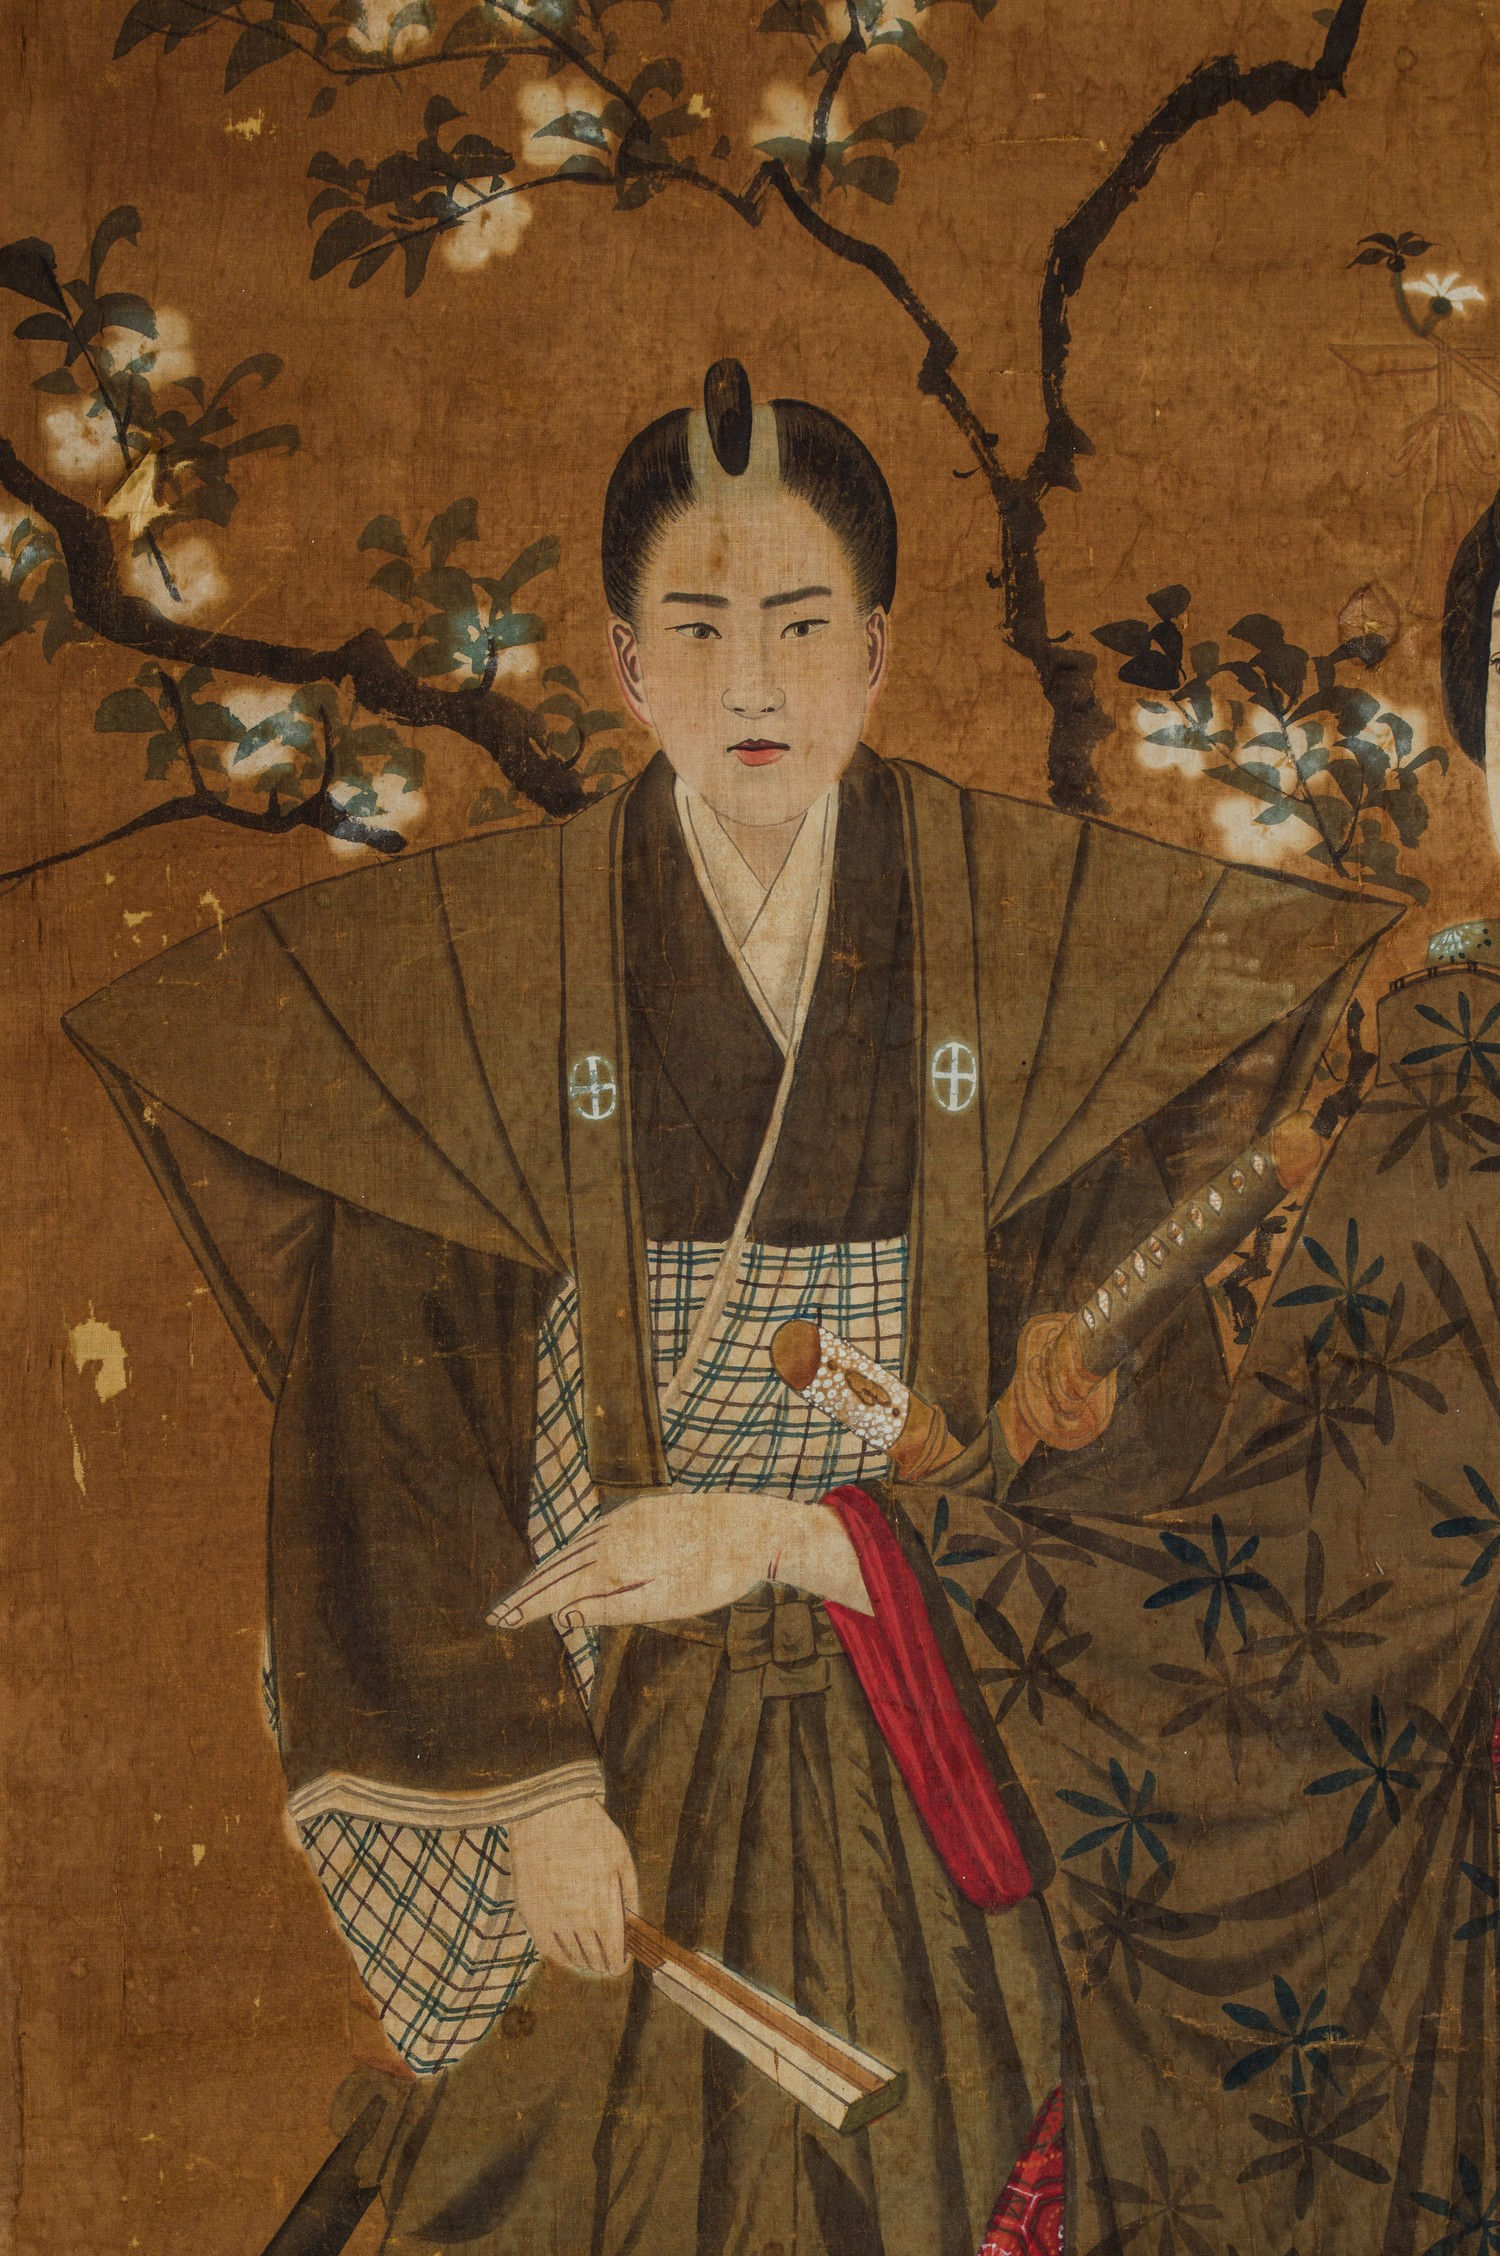 A JAPANESE INK AND WATERCOLOUR ON FABRIC 'GEISHAS AND SHOGUN' PAINTING, MEIJI PERIOD, 1868 - 1912 - Image 3 of 3